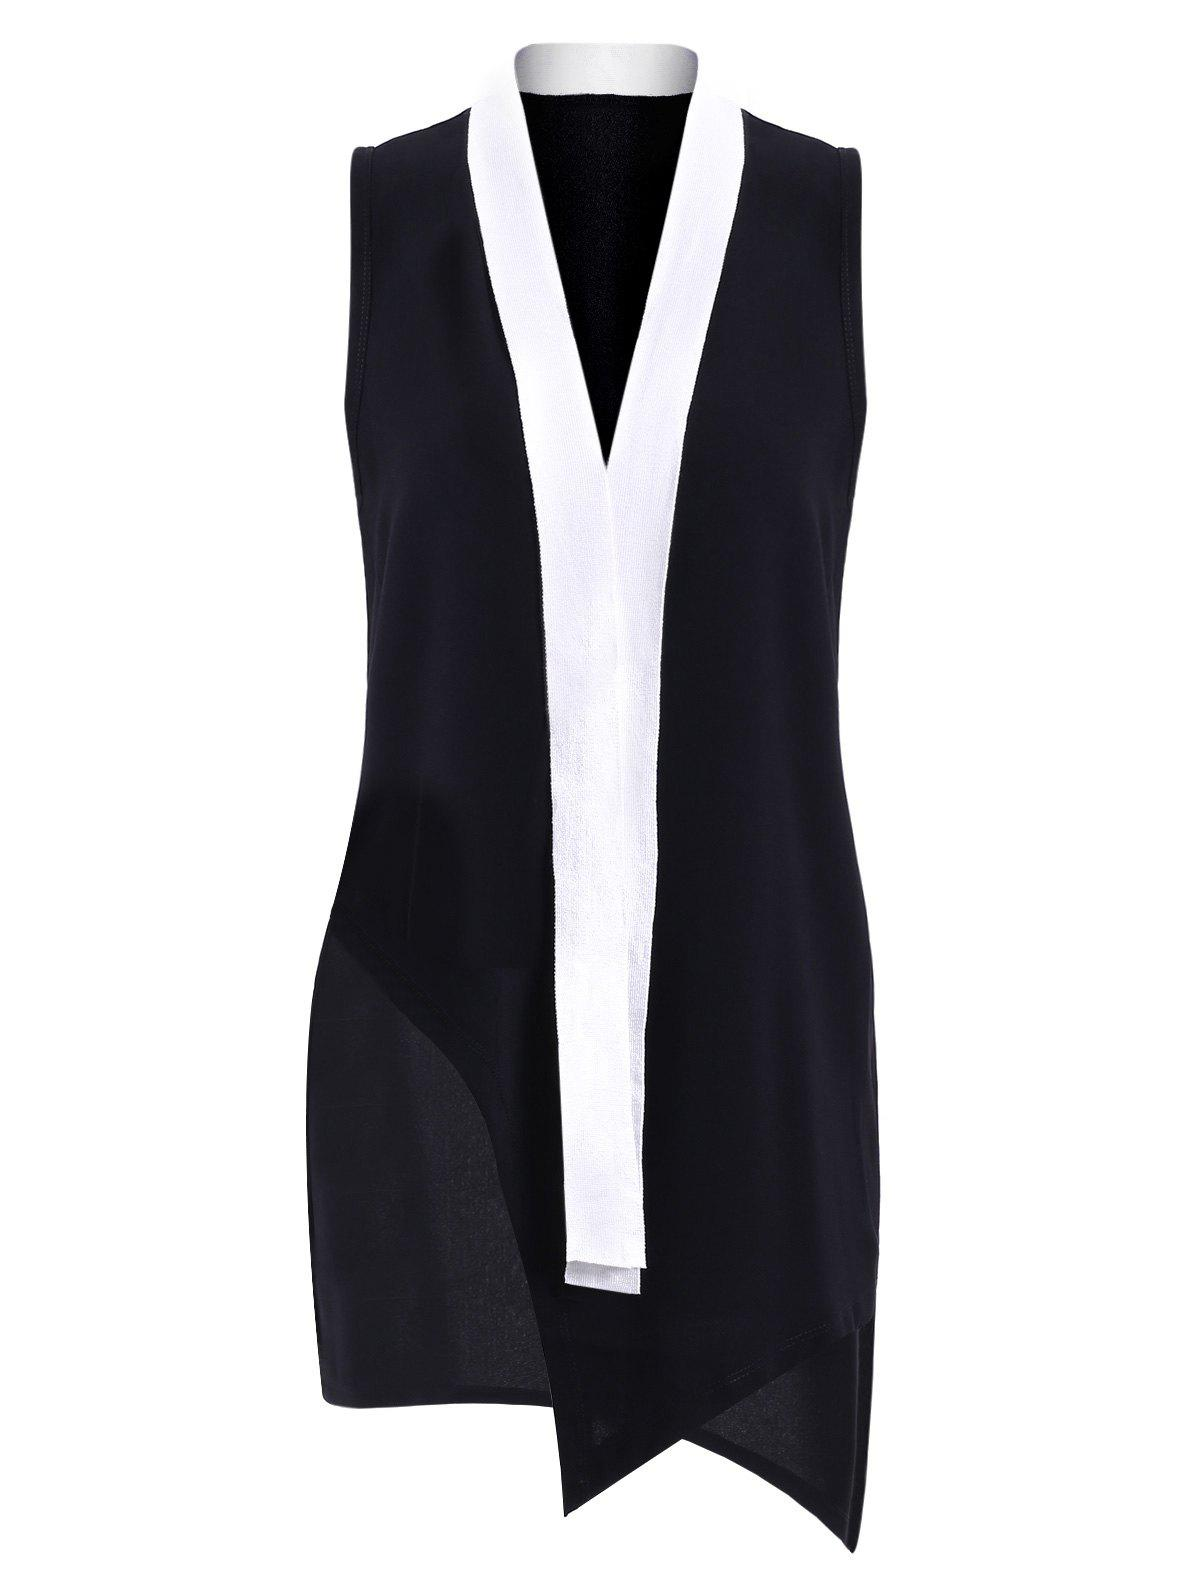 Simple Plunging Neck OL Style Sleeveless Color Block  Womens DressWomen<br><br><br>Size: ONE SIZE(FIT SIZE XS TO M)<br>Color: WHITE AND BLACK